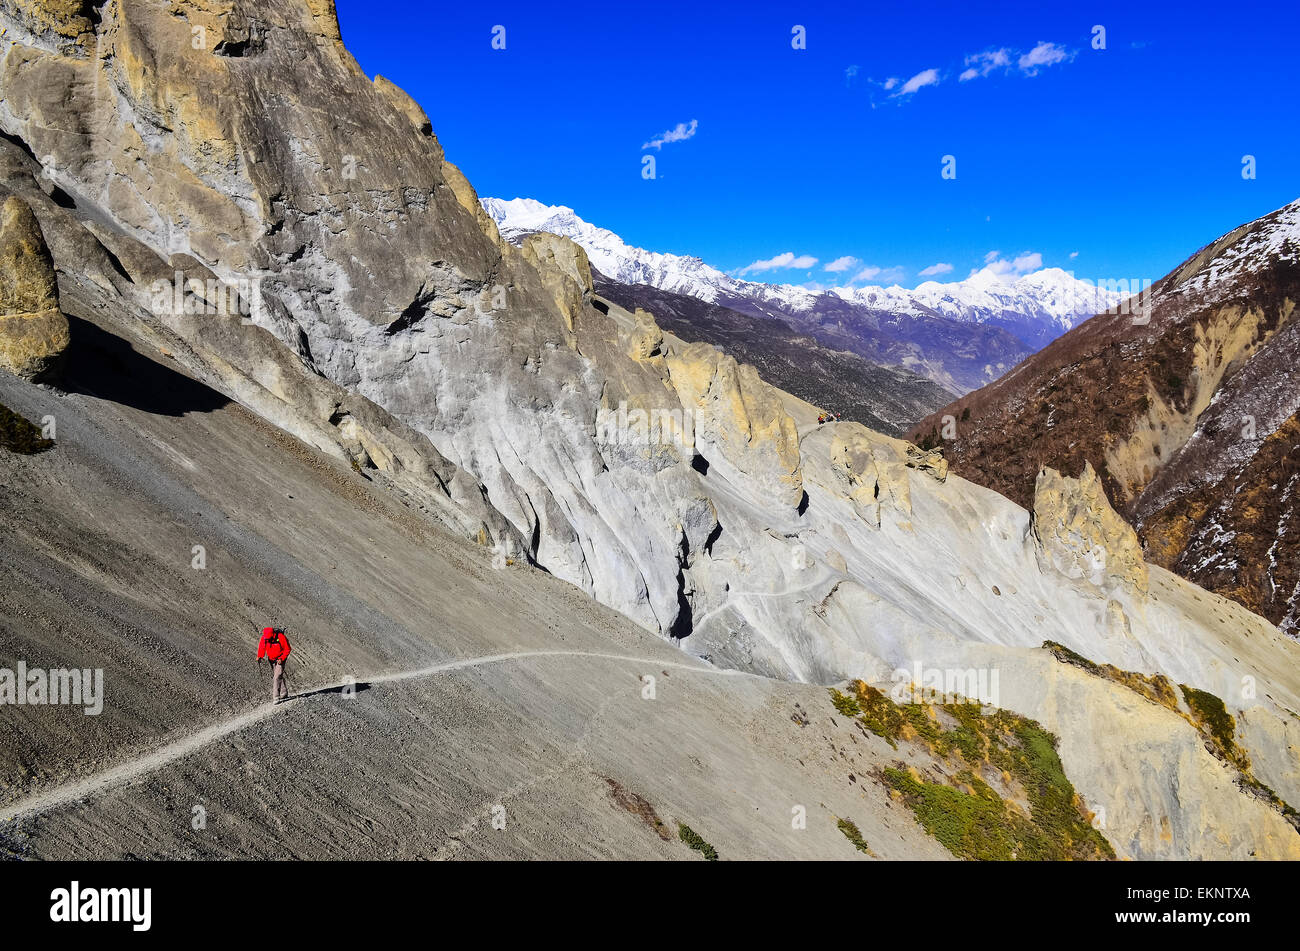 Trekker in red jacket in Himalayas mountains - Stock Image